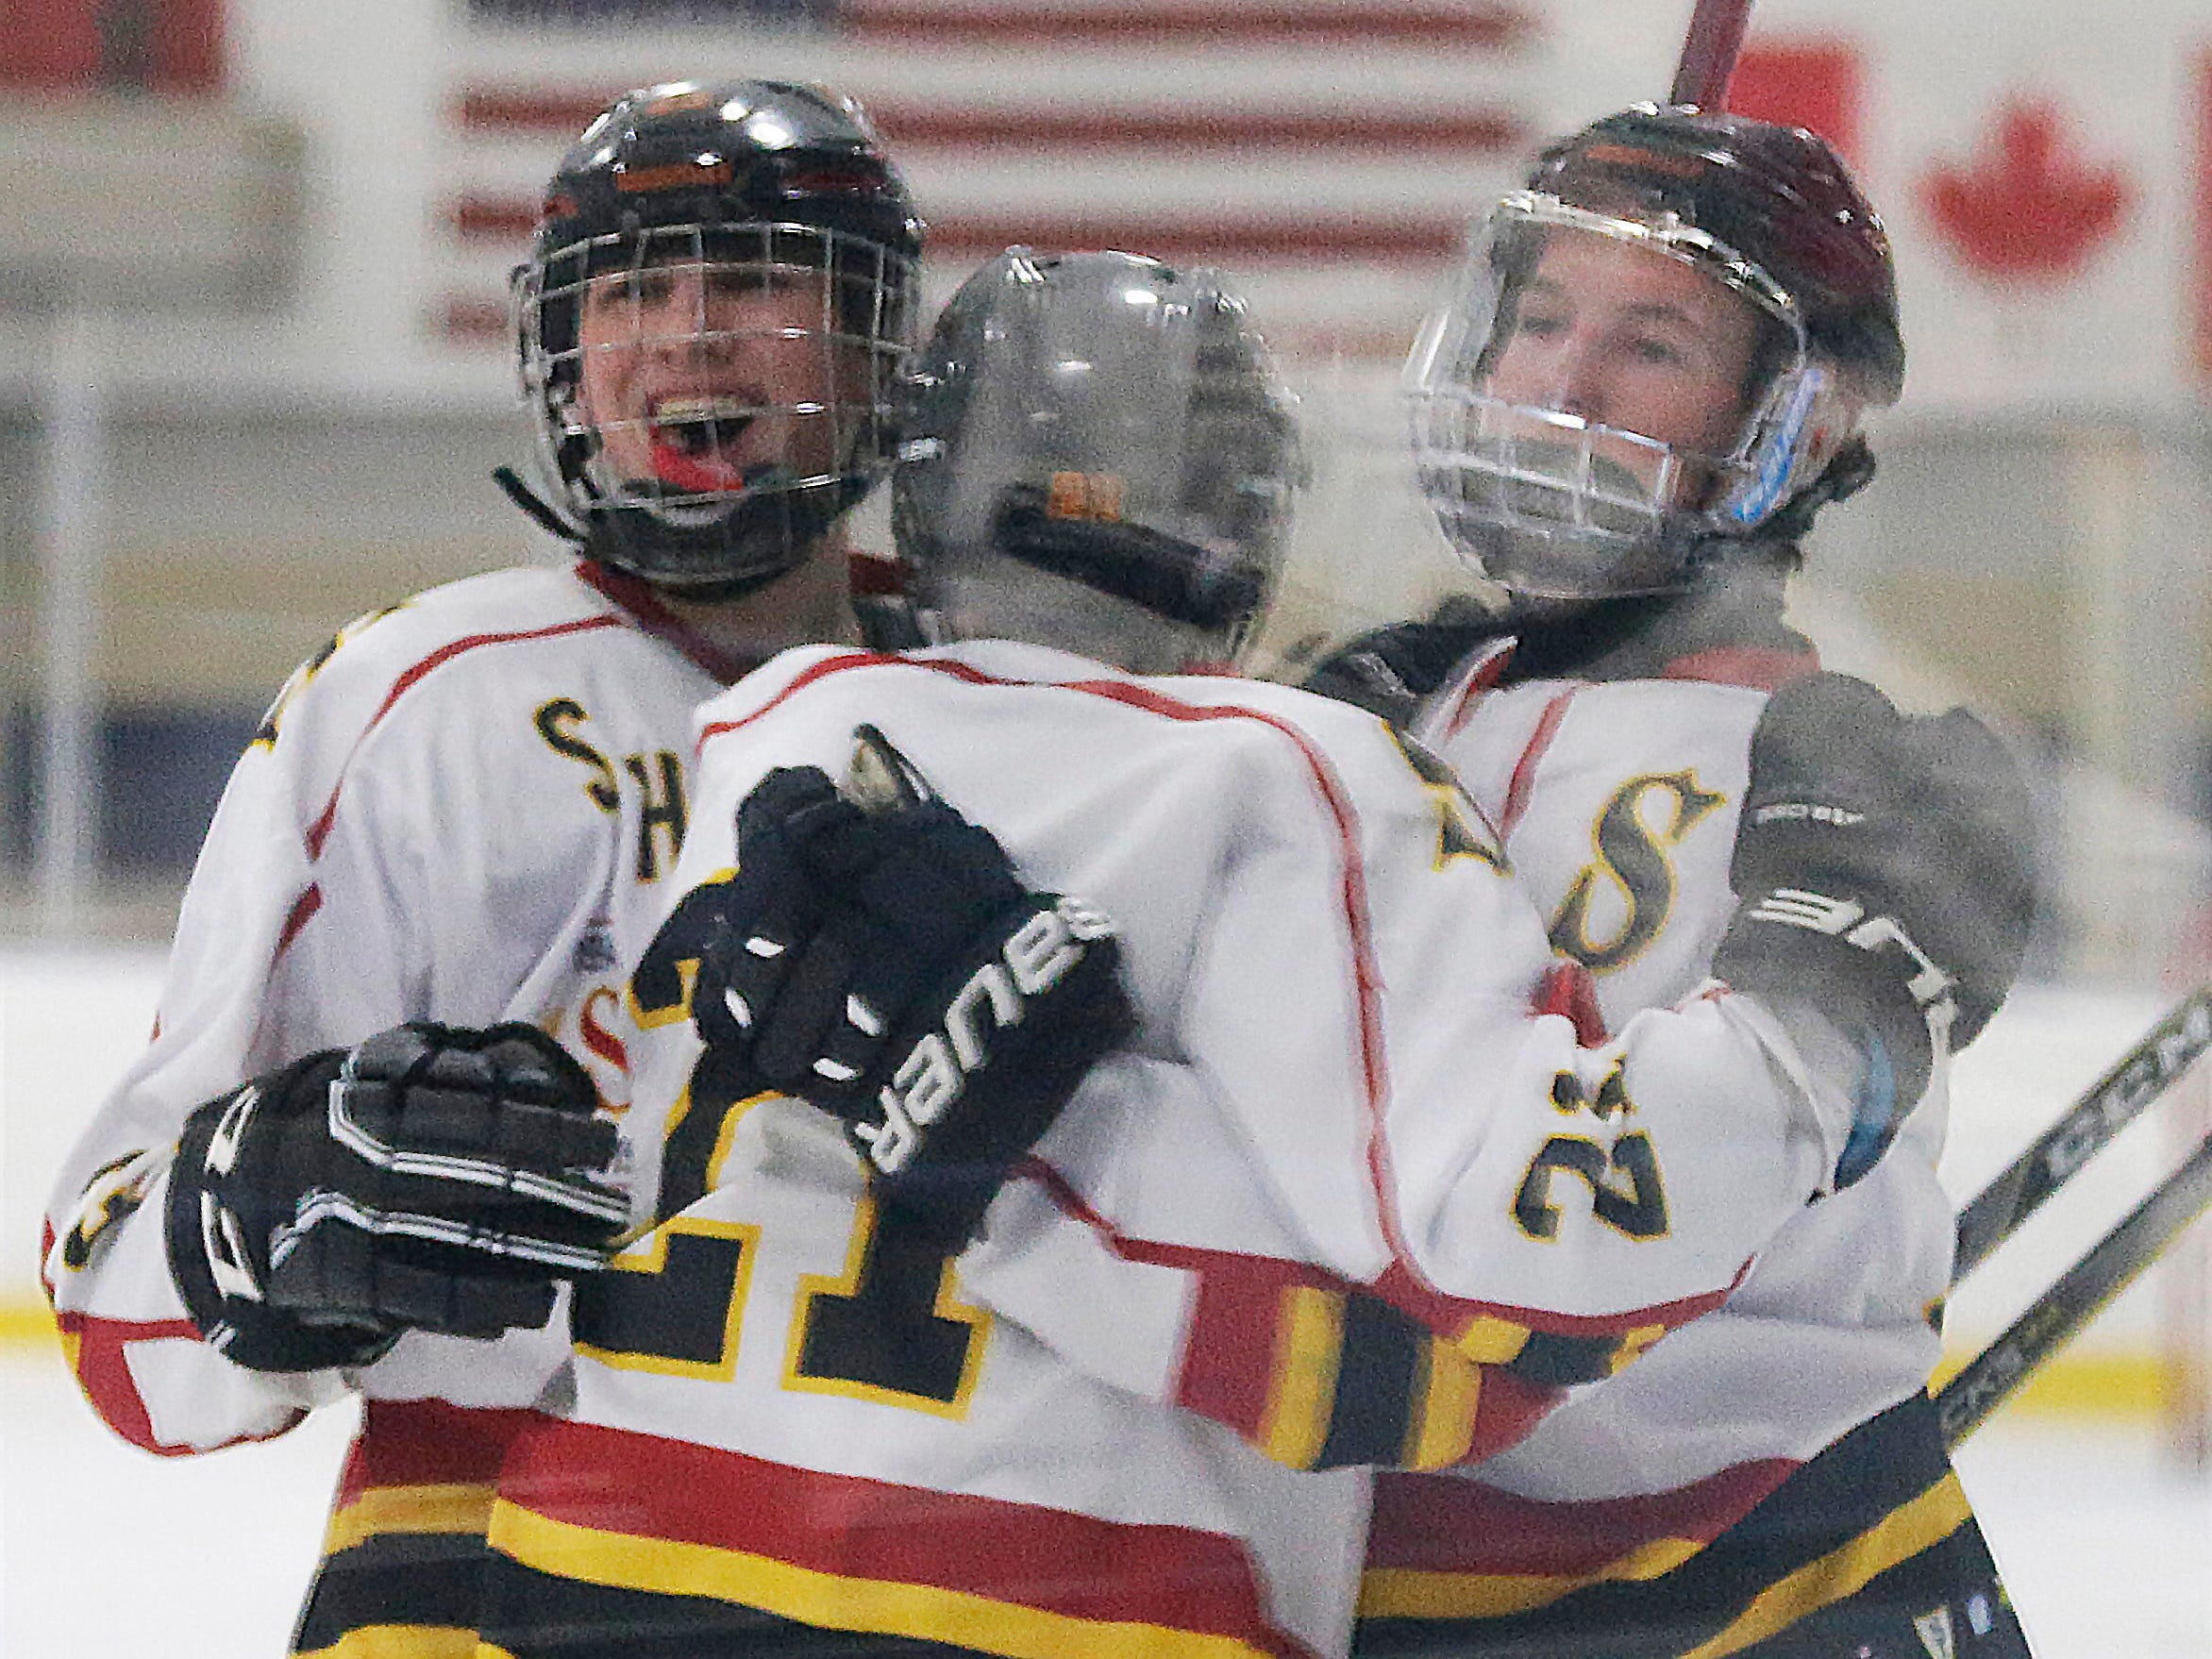 Sheboygan Red Raiders Celebrate a goal against Waupun, Wednesday, February 13, 2019, in Sheboygan, Wis.